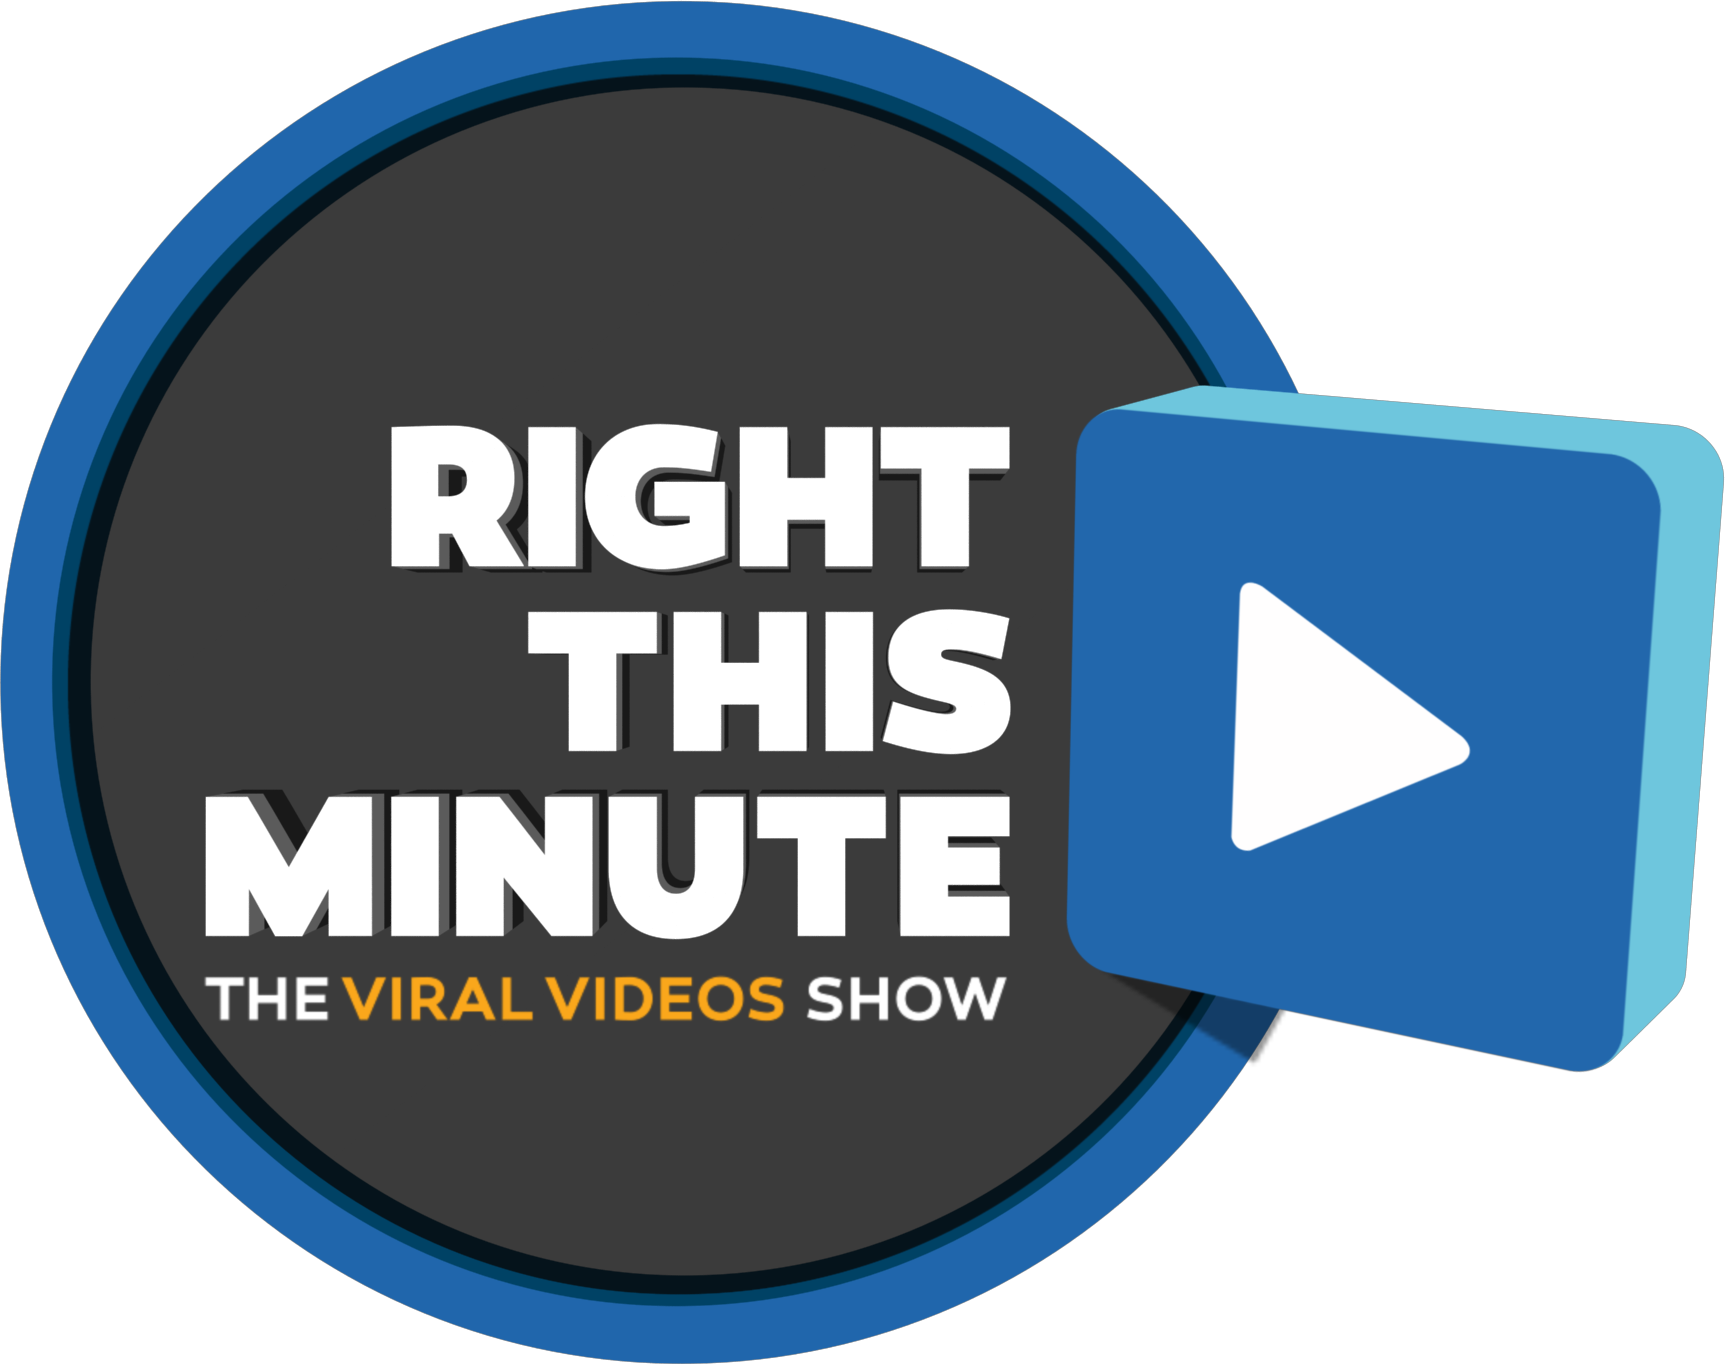 RightThisMinute-broadcast-logo-3D-2015-large.png